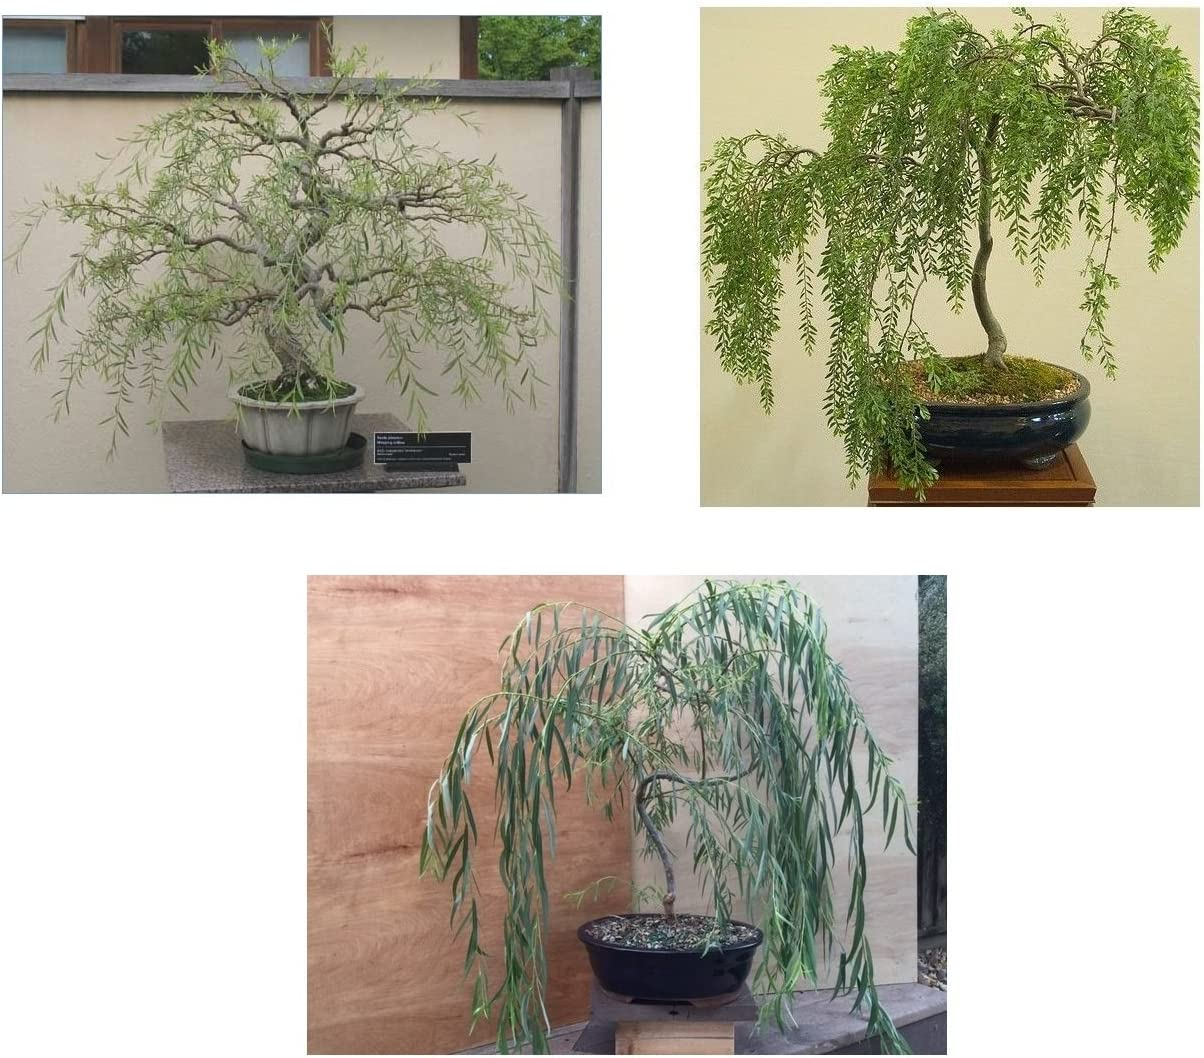 Amazon Com Bonsai Willow Tree Bundle 3 Large Trunk Bonsai Tree Cuts Get One Each Weeping Australian Dragon Ready To Plant Indoor Outdoor Bonsai Tree S Garden Outdoor